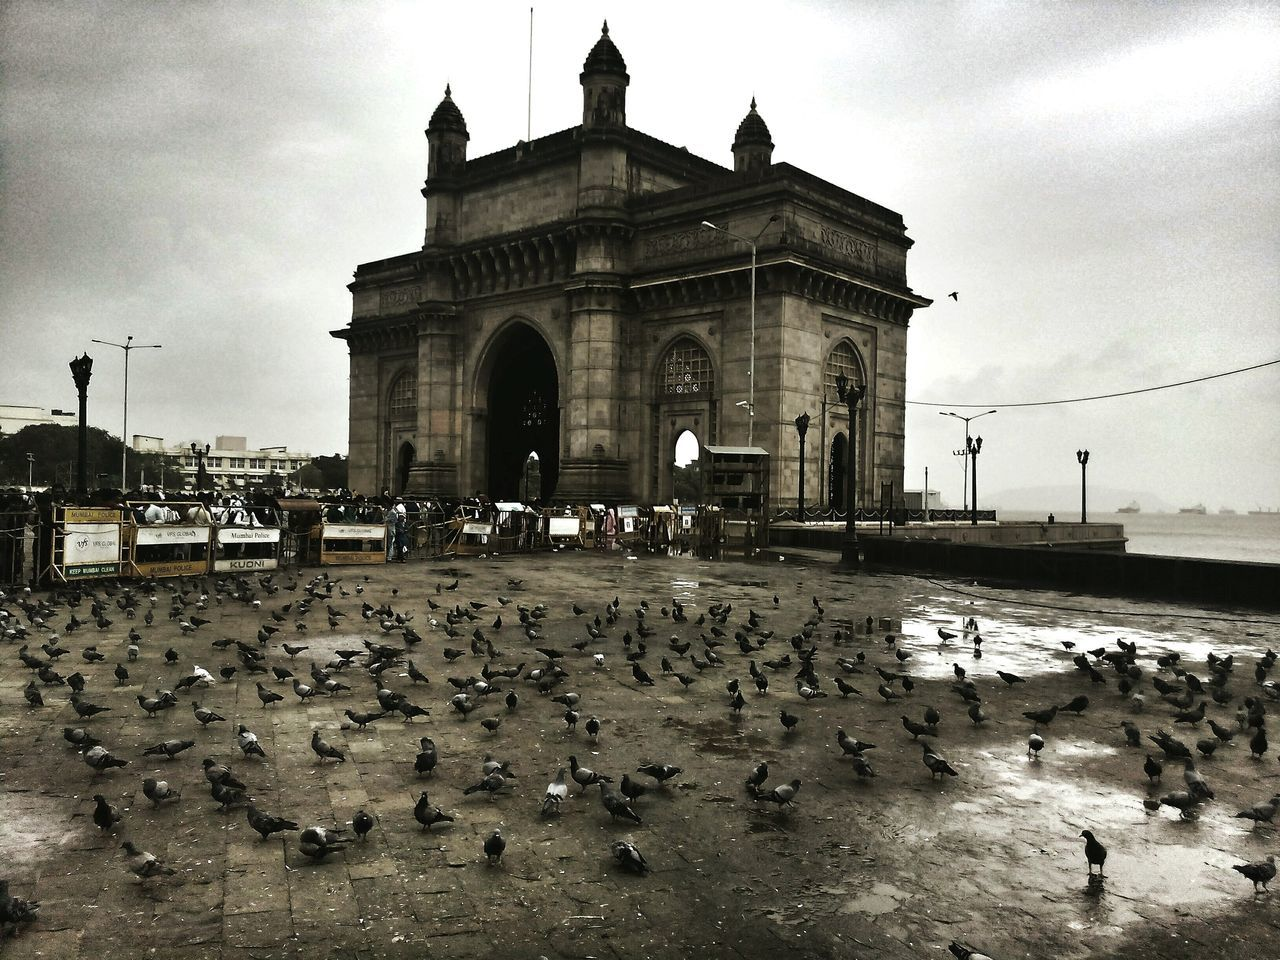 Another Click The Gateway Of India Grand Historical Building Check This Out Taking Photos Hanging Out Awesome Architecture Mumbai City Of Dreams Cheese! In Love With Monsoon